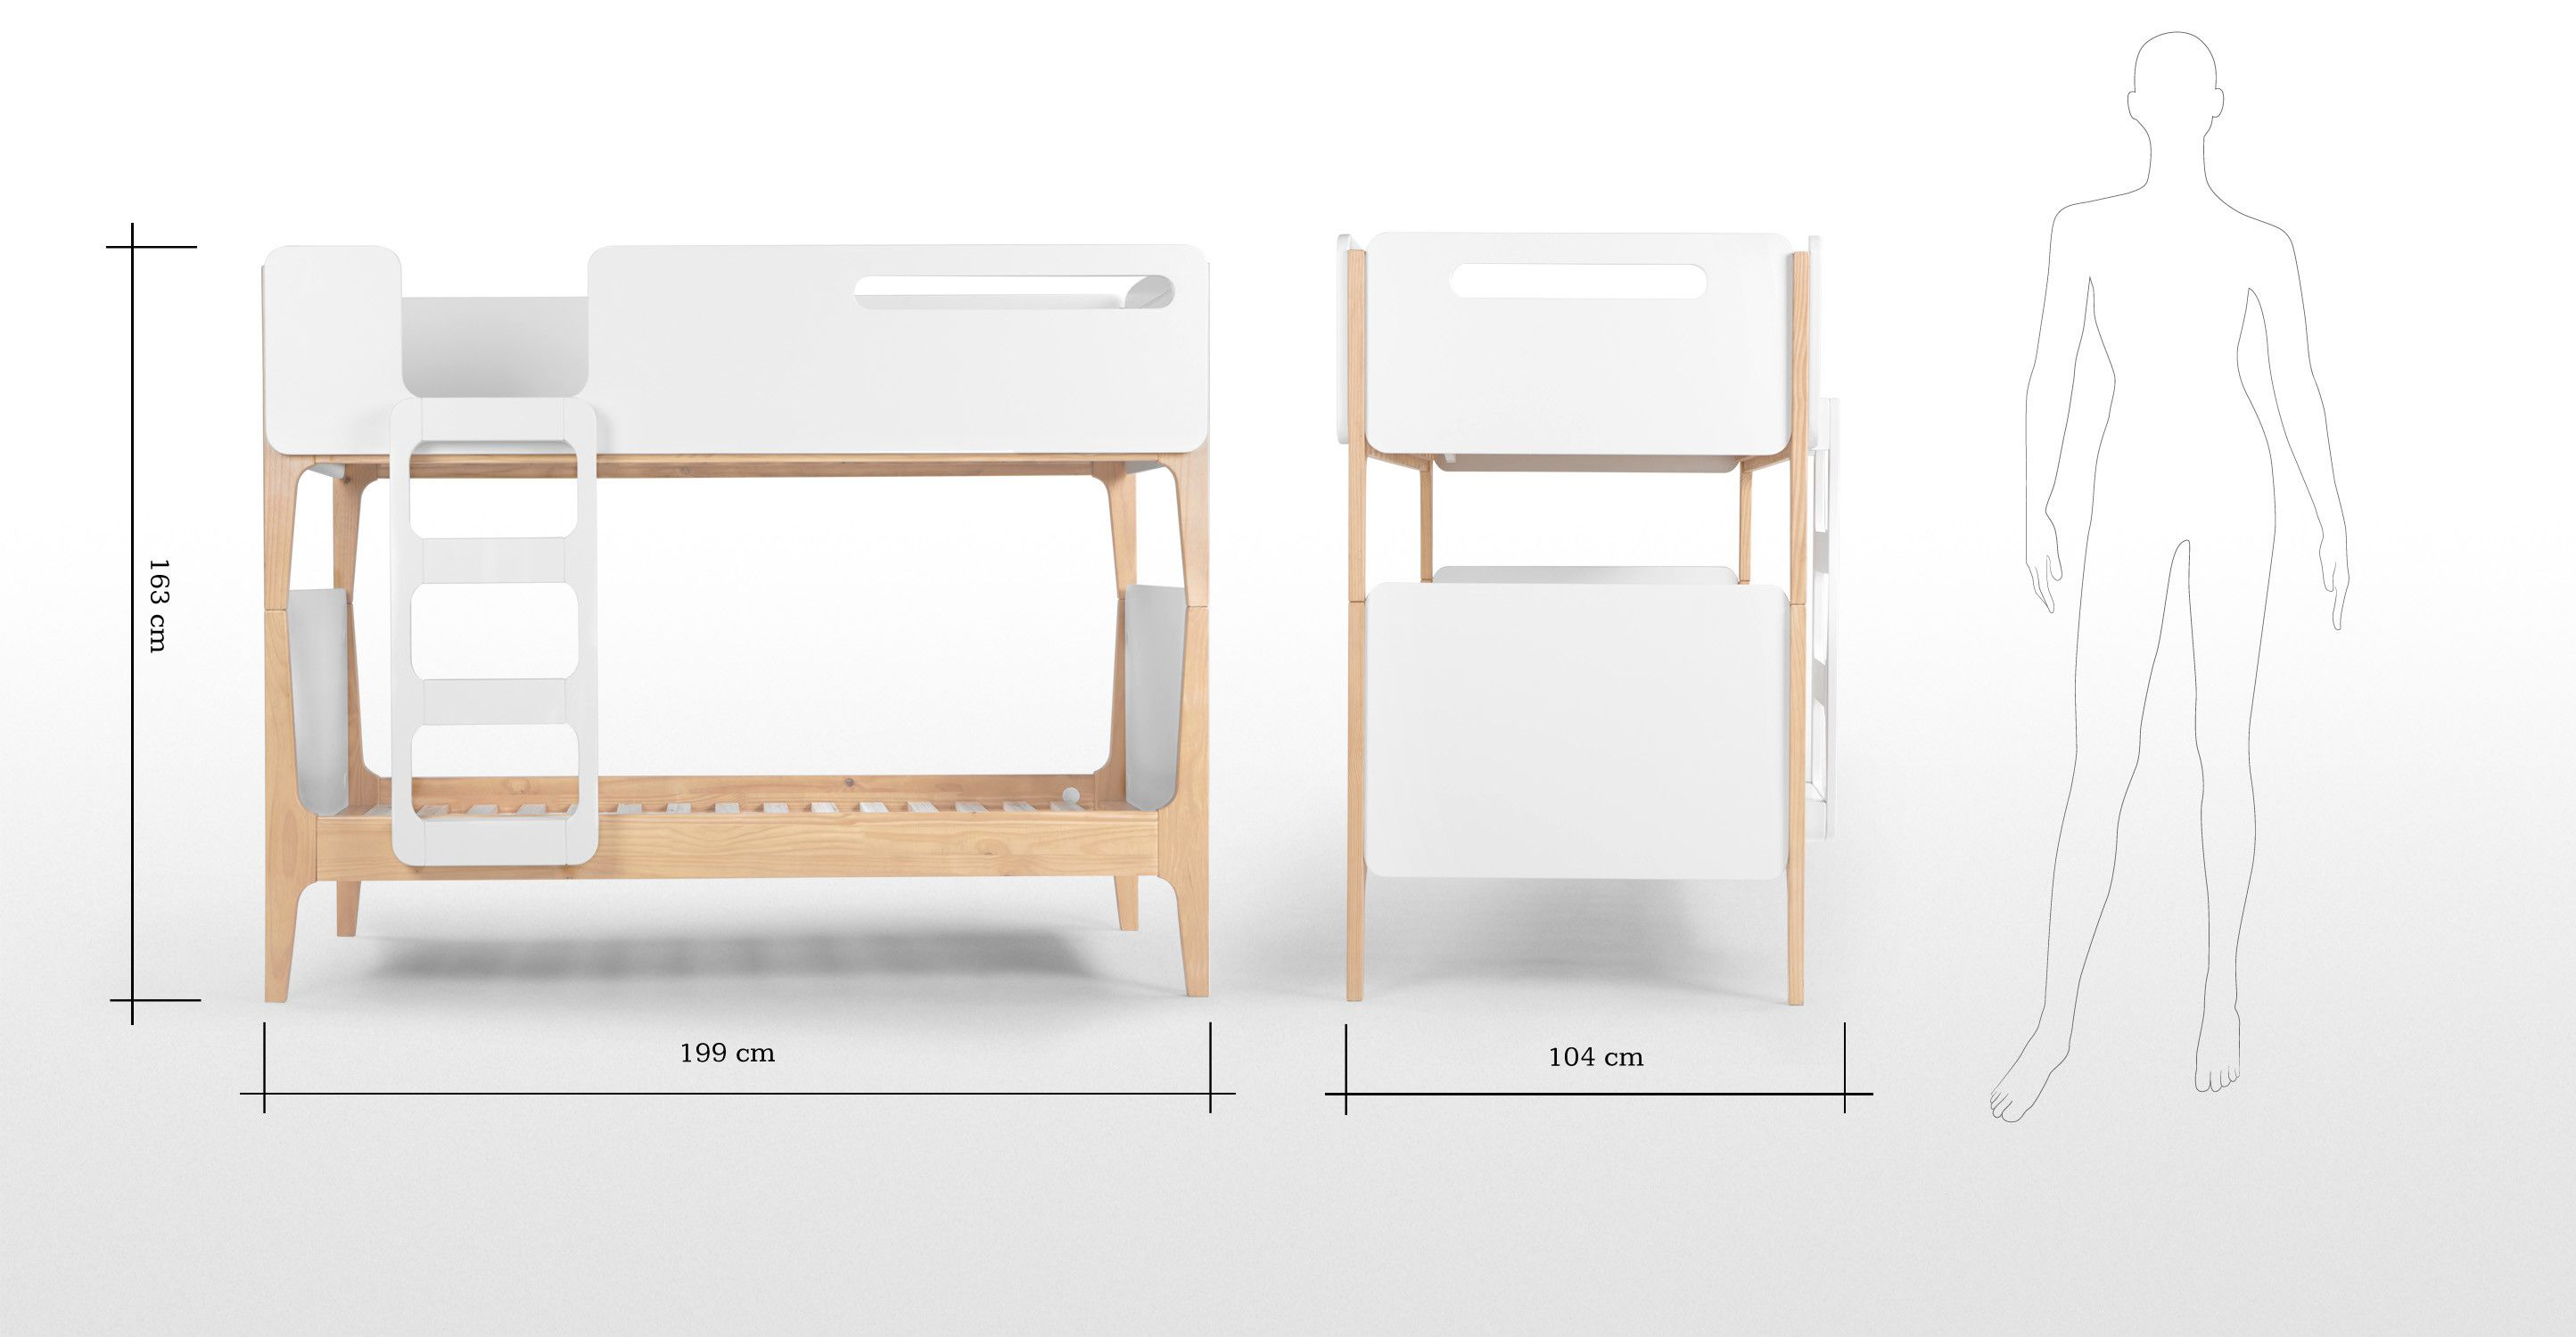 Pine loft bed with desk  Pin by Mariska Joustra on INTERIOR Interieur  Pinterest  Bunk bed